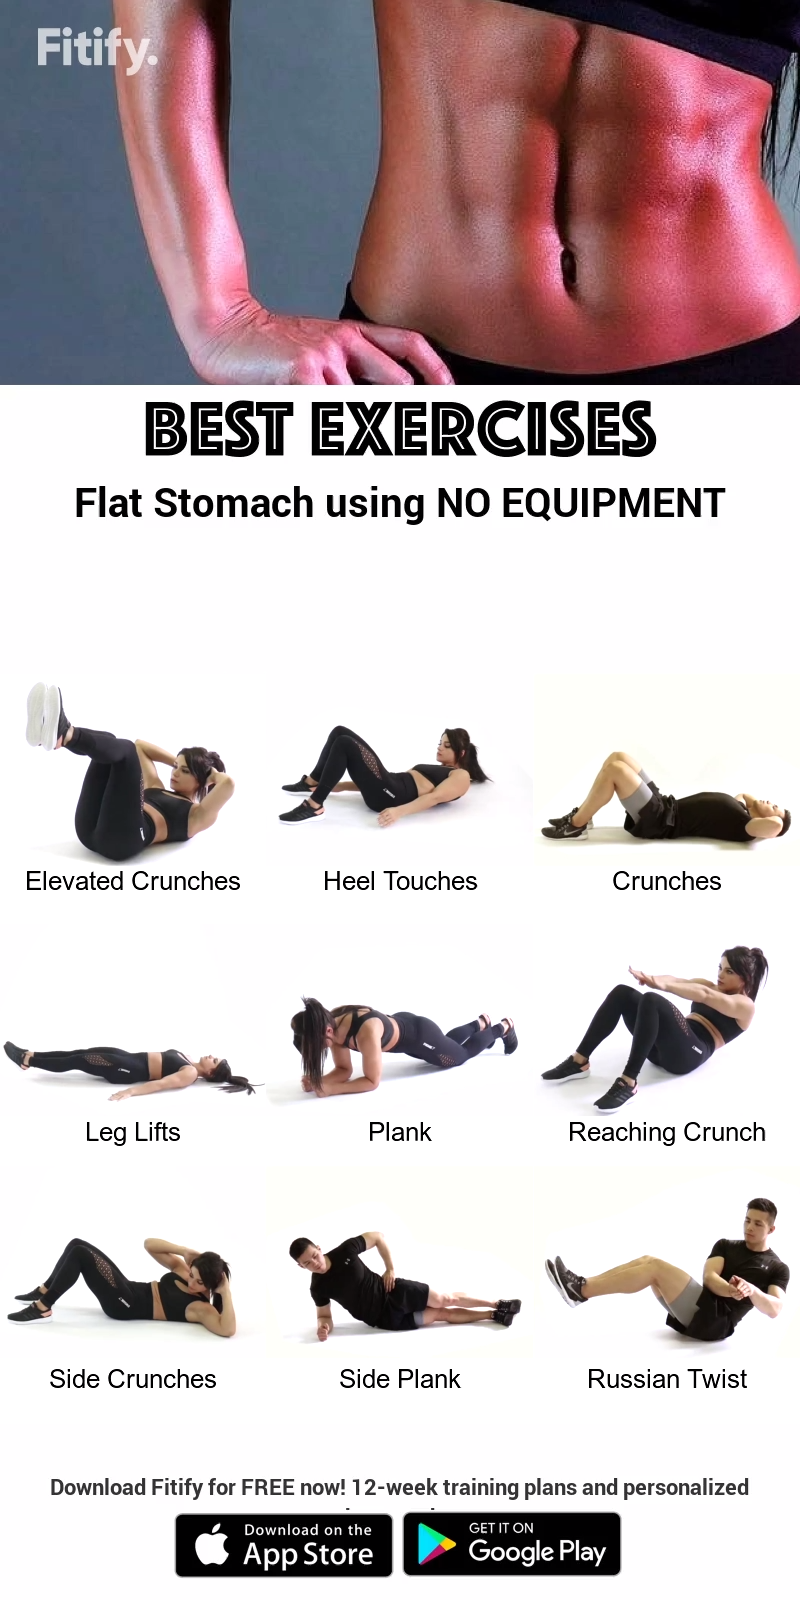 #AUSRÜSTUNG #Fitify #fitnessexercisesathome #Ohne #Pack #Übungen #von Six Pack EXERCISES with NO EQUIPMENT by Fitify #fitnessexercisesathome        Six Pack ÜBUNGEN OHNE AUSRÜSTUNG von Fitify #fitnessexercisesathome #fitnessexercisesathome